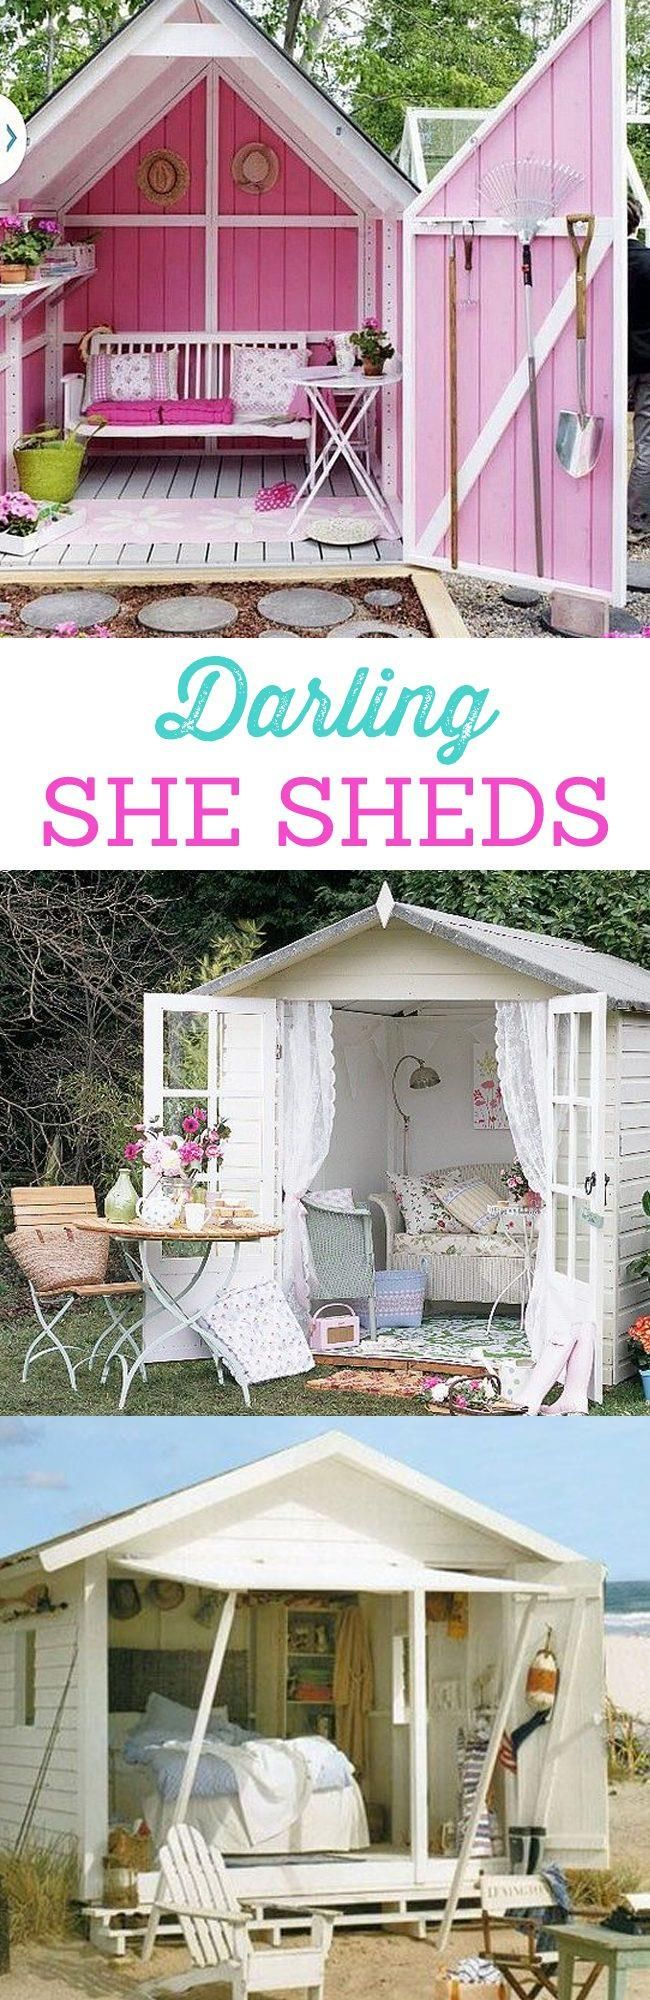 405 best she sheds and cottages images on pinterest small